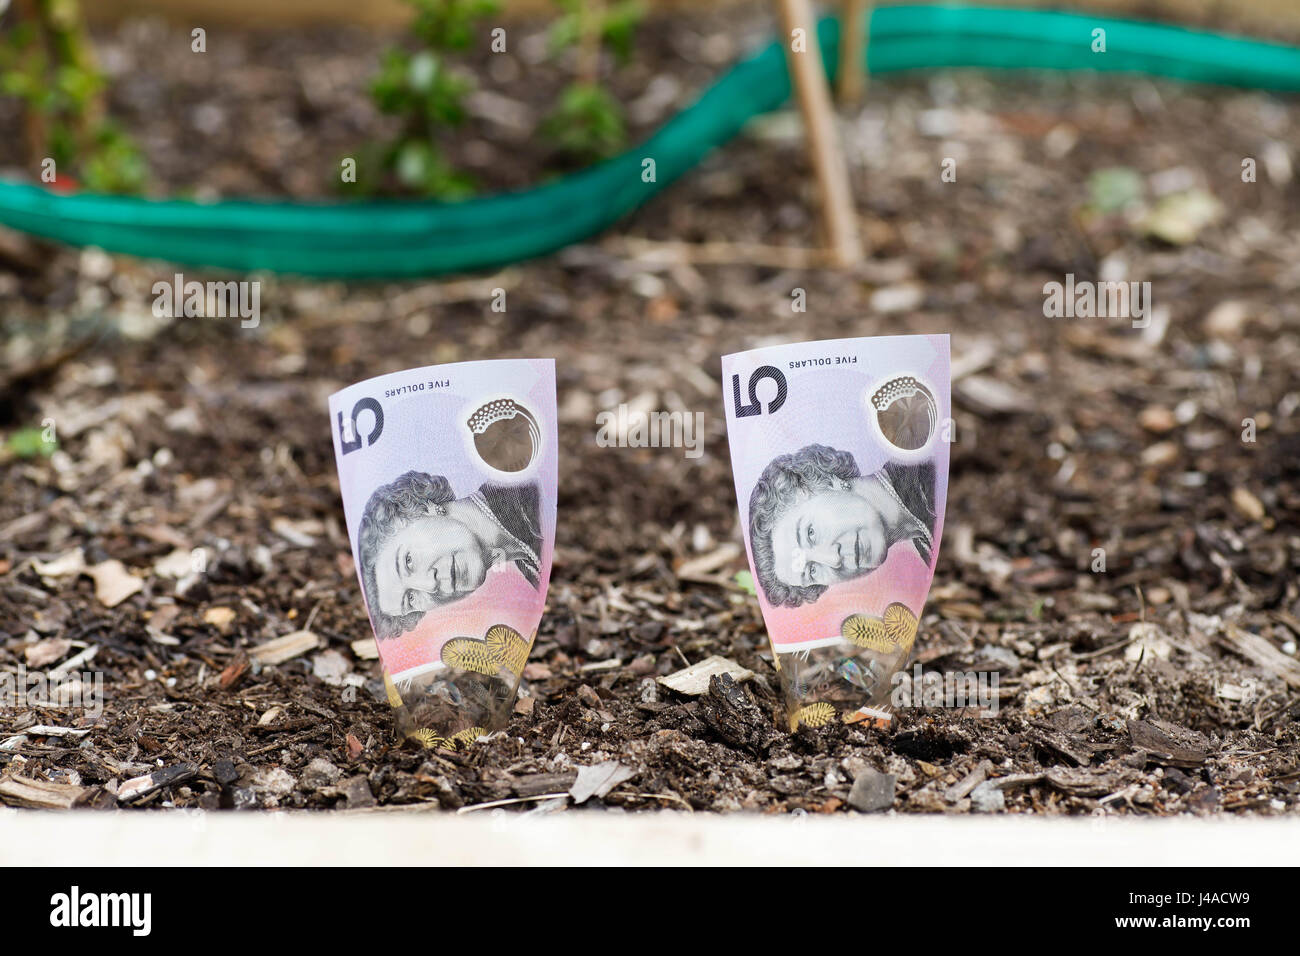 Growing Australian $5 in garden bed - Stock Image